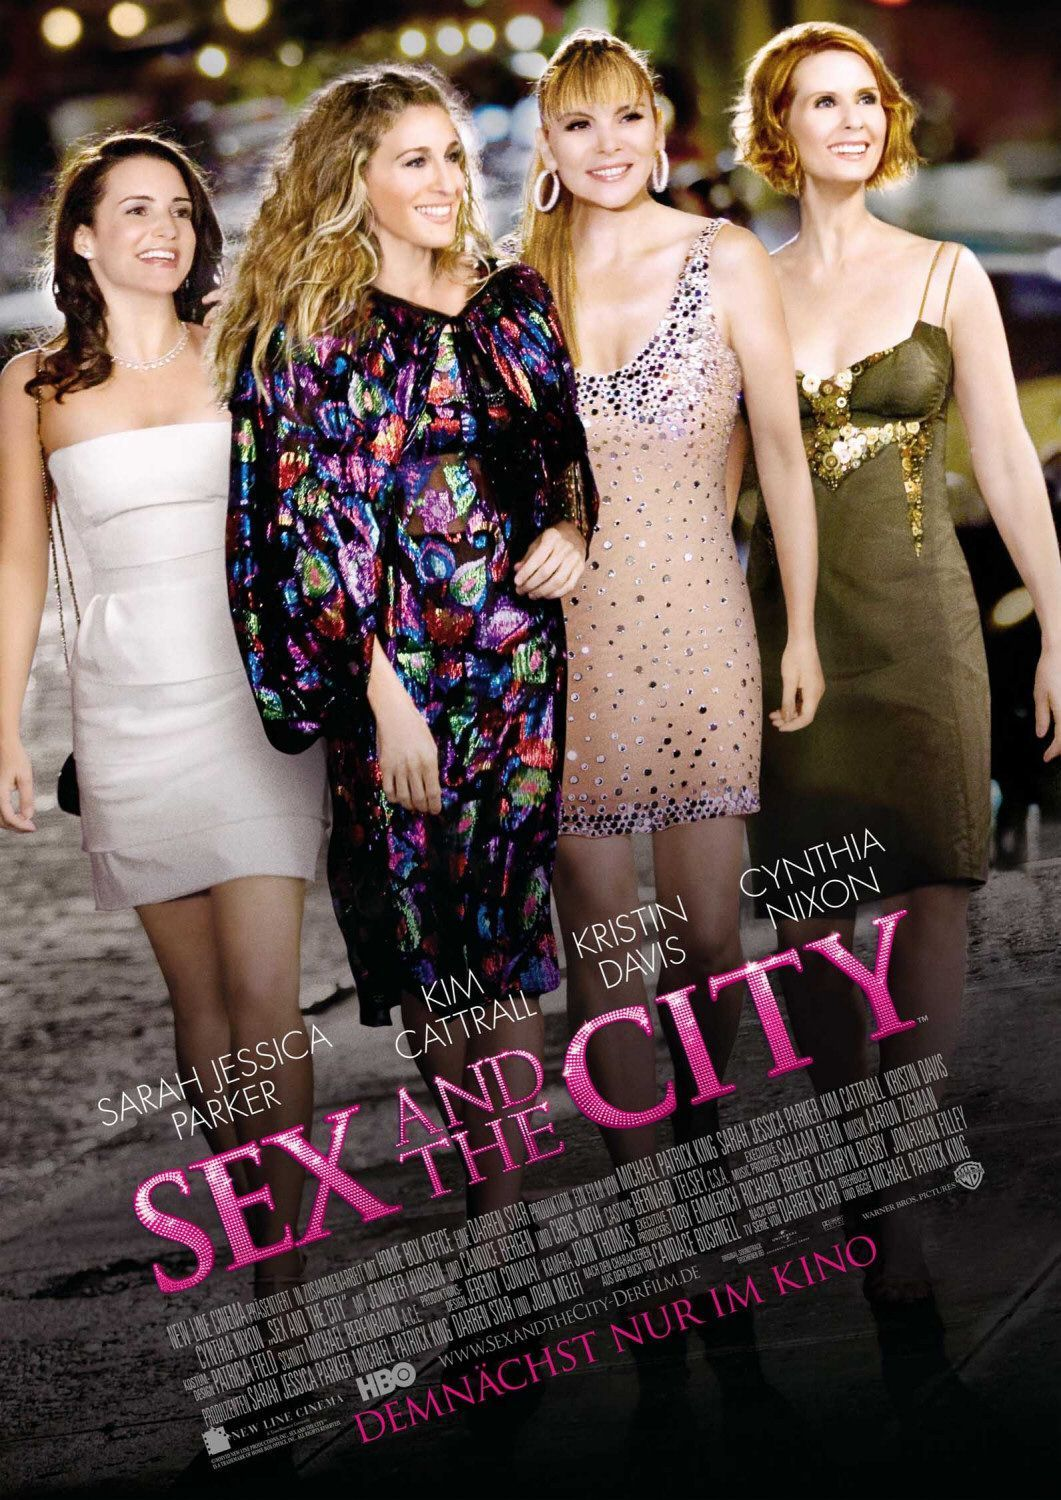 http://images1.fanpop.com/images/image_uploads/Sex-and-the-City-Movie-Poster-sex-and-the-city-the-movie-1261256_1061_1500.jpg